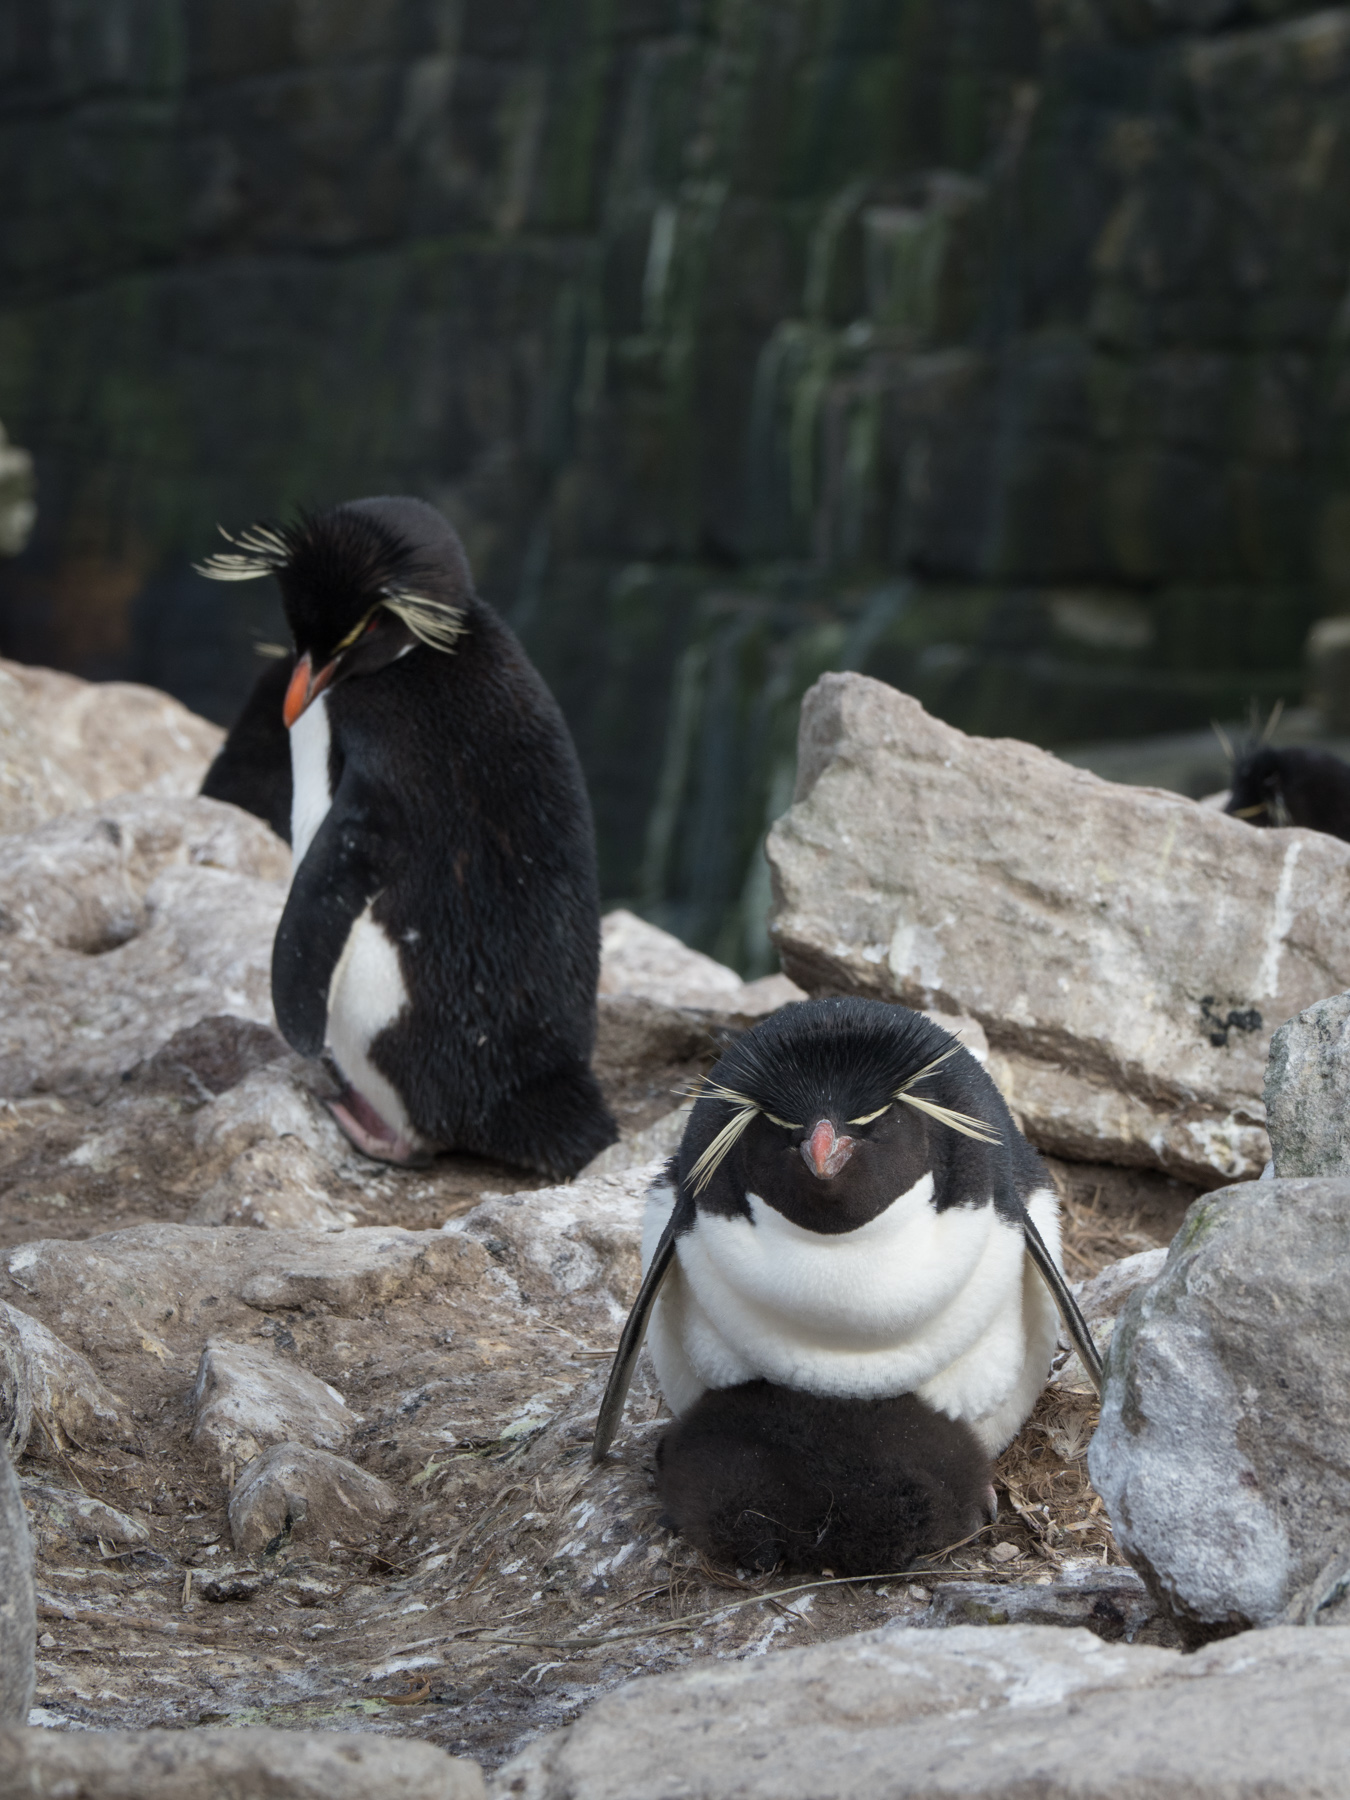 Rockhopper Penguin keeping his chick warm as his mate keeps a watchful eye.  Chick would be approx. 2 weeks old.